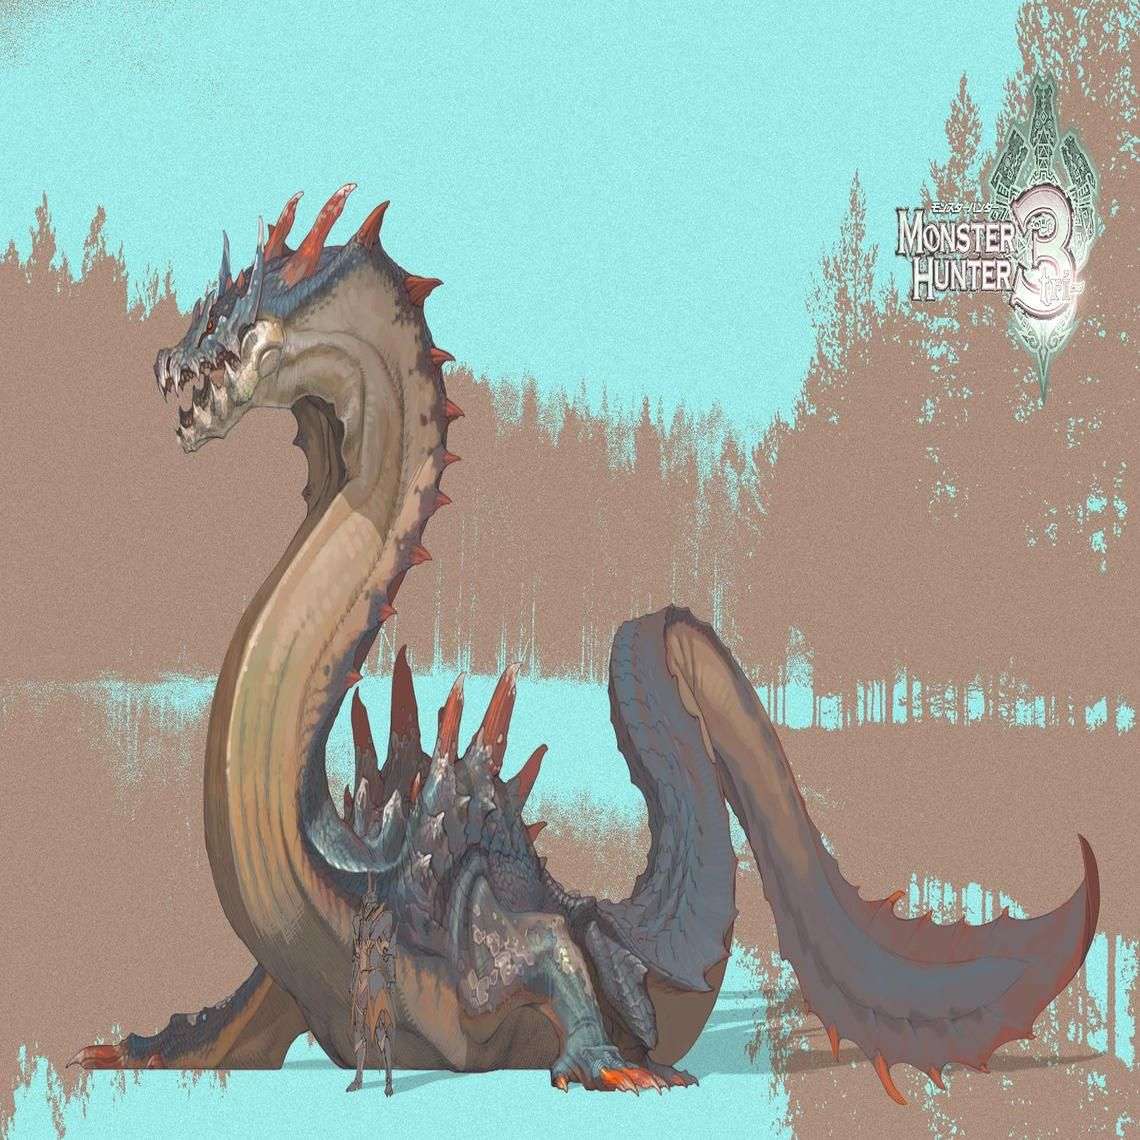 Lagiacrus Monster Hunter Art Monster Hunter Monster It is a greatly feared leviathan known as the lord of the seas that specializes in using specialized plates on its back to charge and electrify its enemies and prey. lagiacrus monster hunter art monster